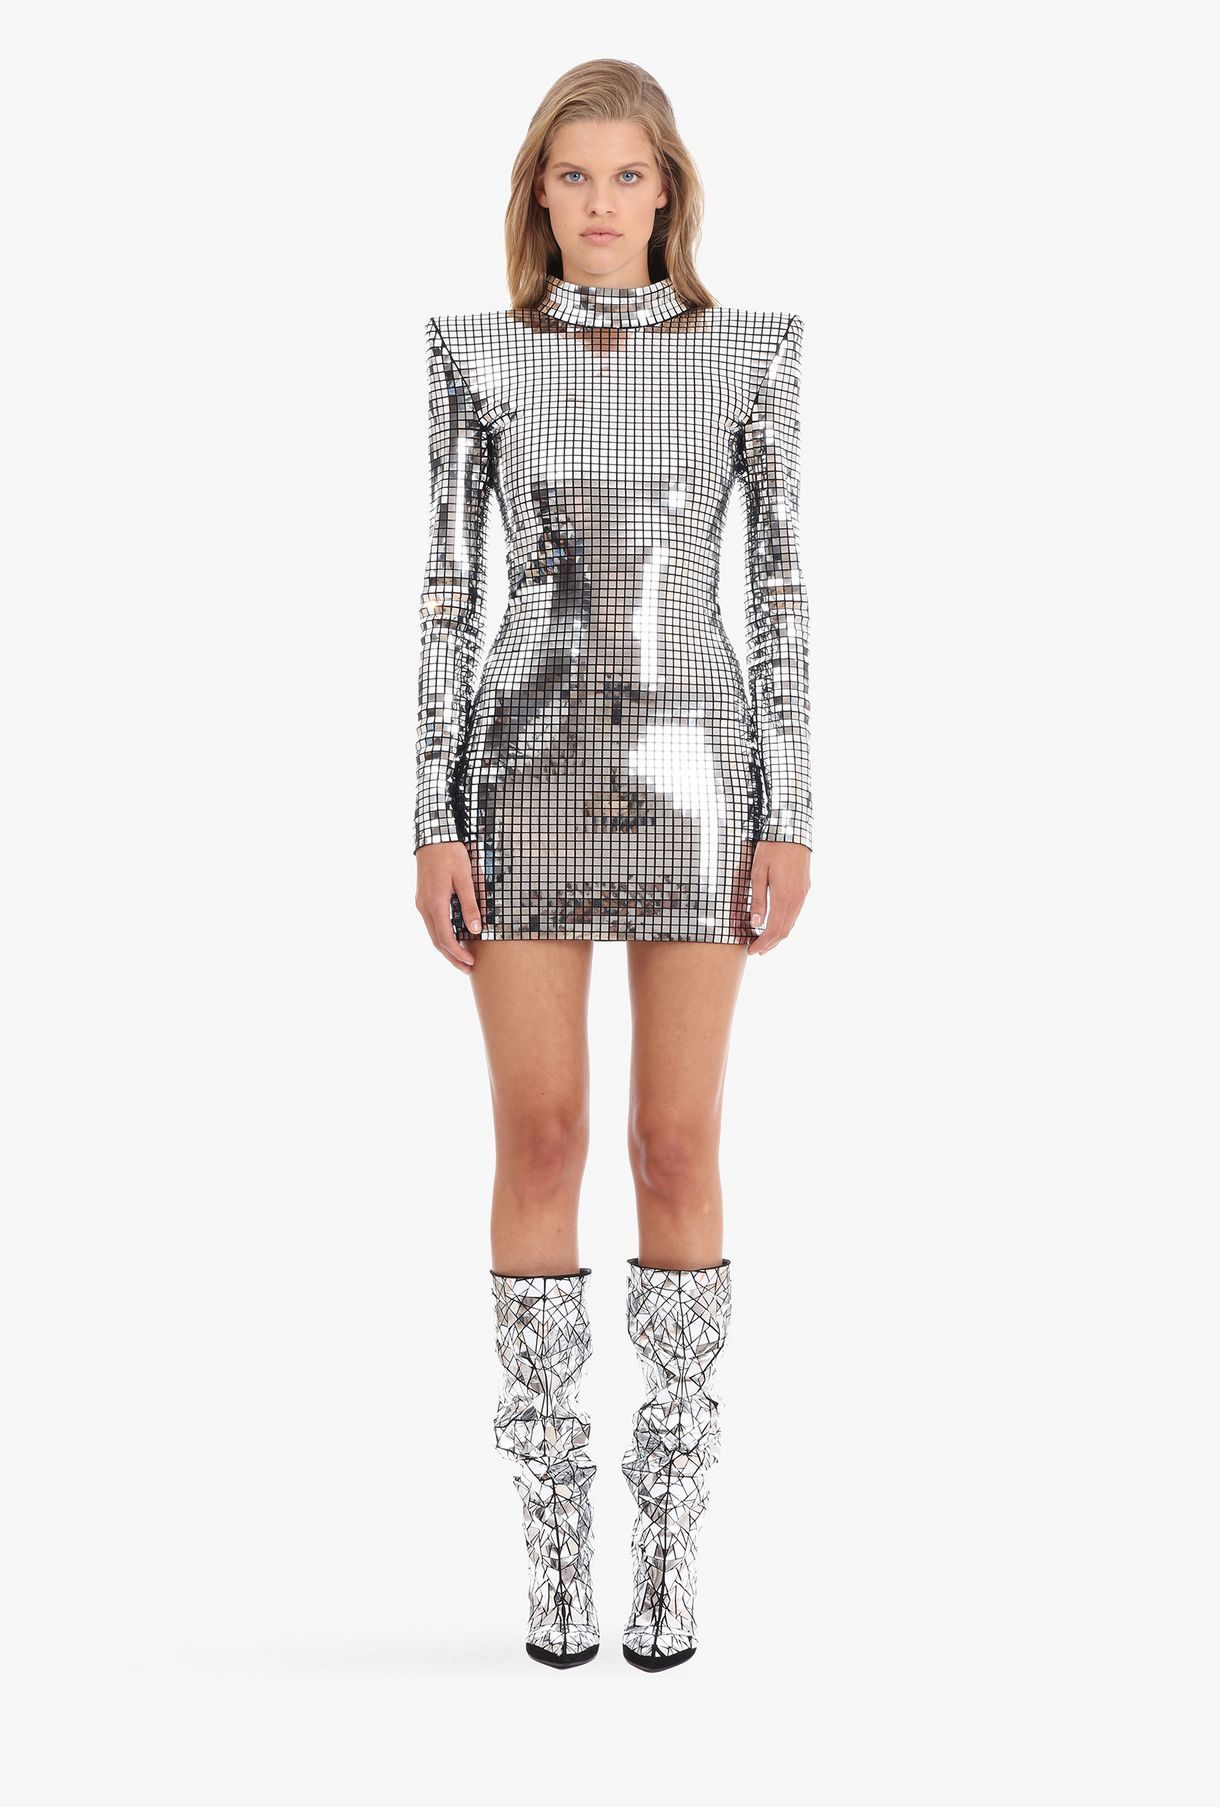 be207754 BALMAIN Structured silver mini dress Dress Woman c | Style ideas ...